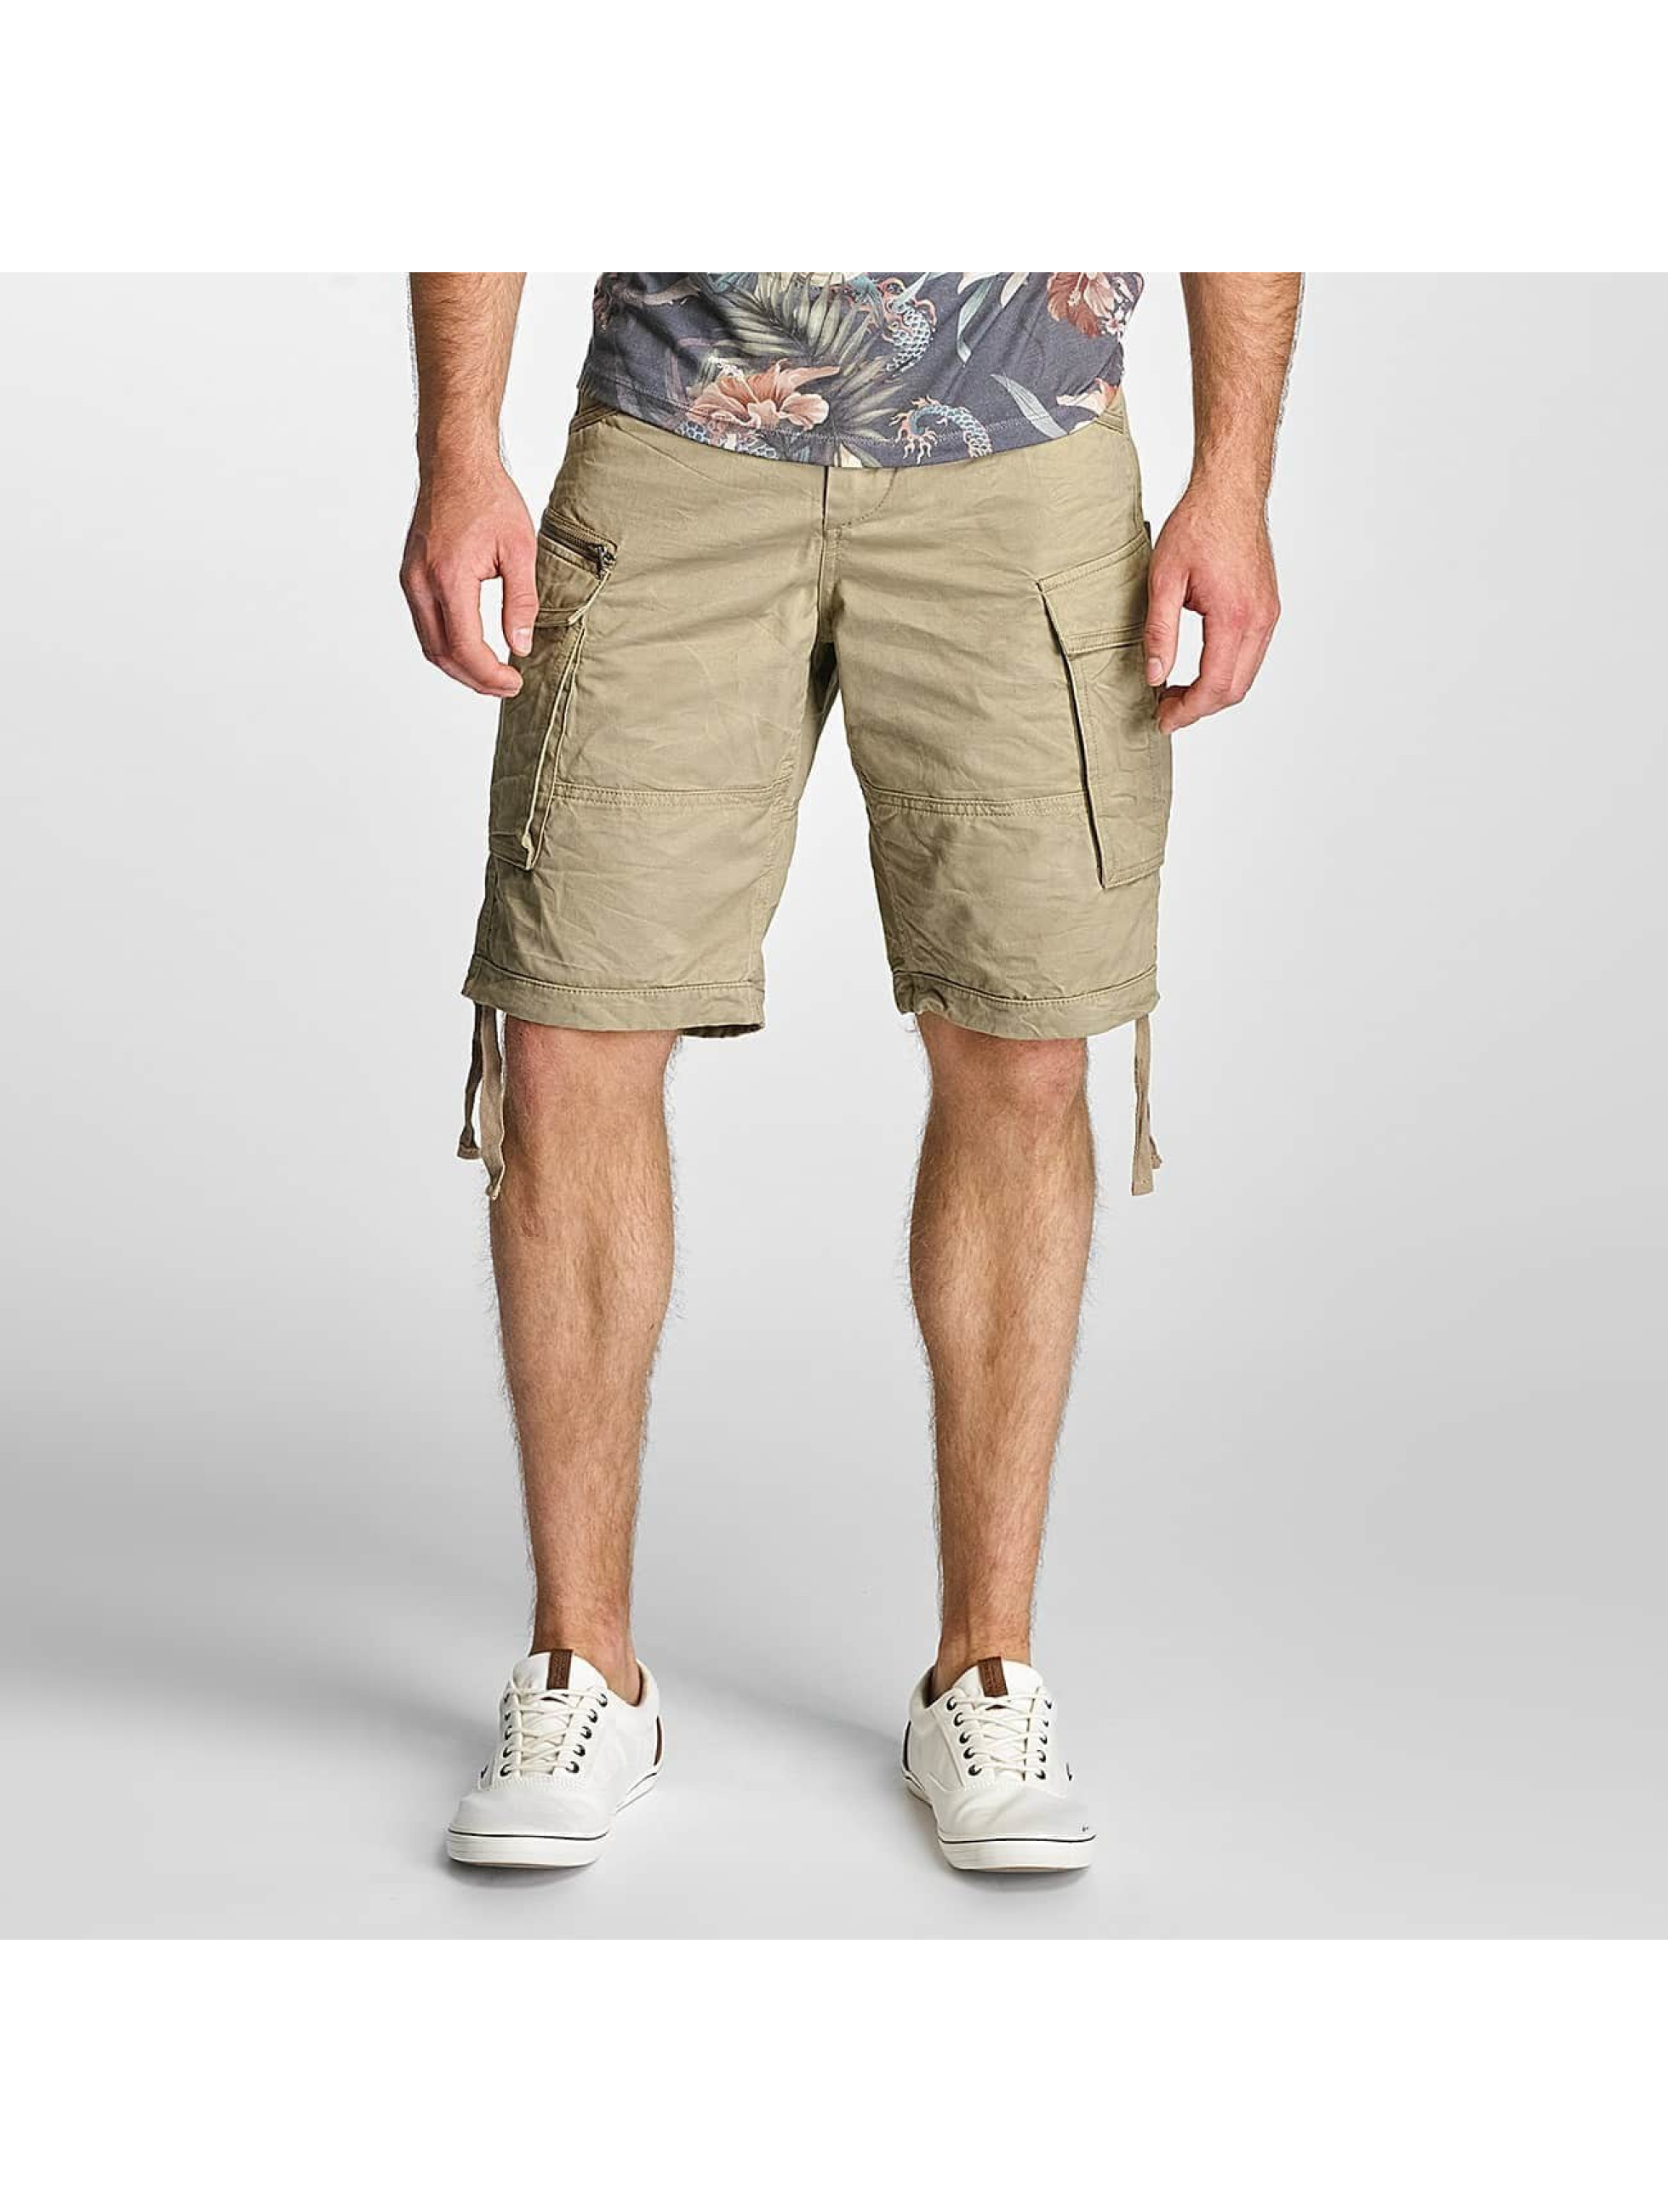 Jack & Jones Short jjiChop khaki